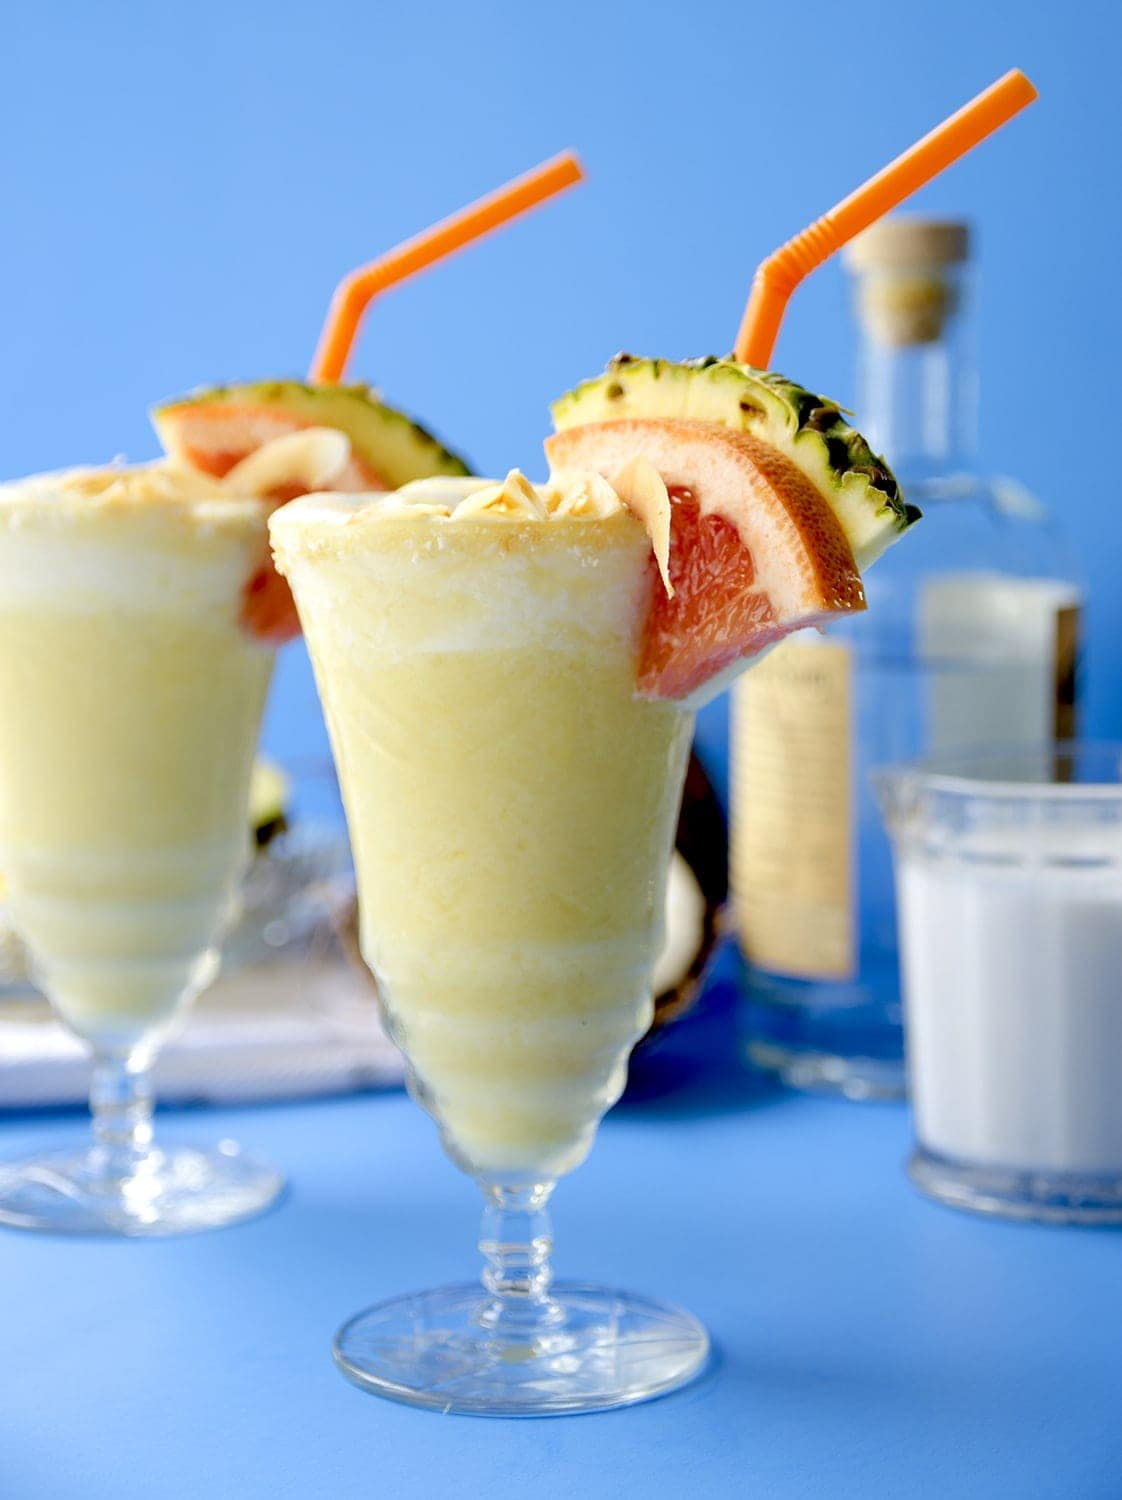 Summer is not over yet, so whip up one of these rich, creamy Piña Coladas from scratch and cool down in style! | vintagekitty.com